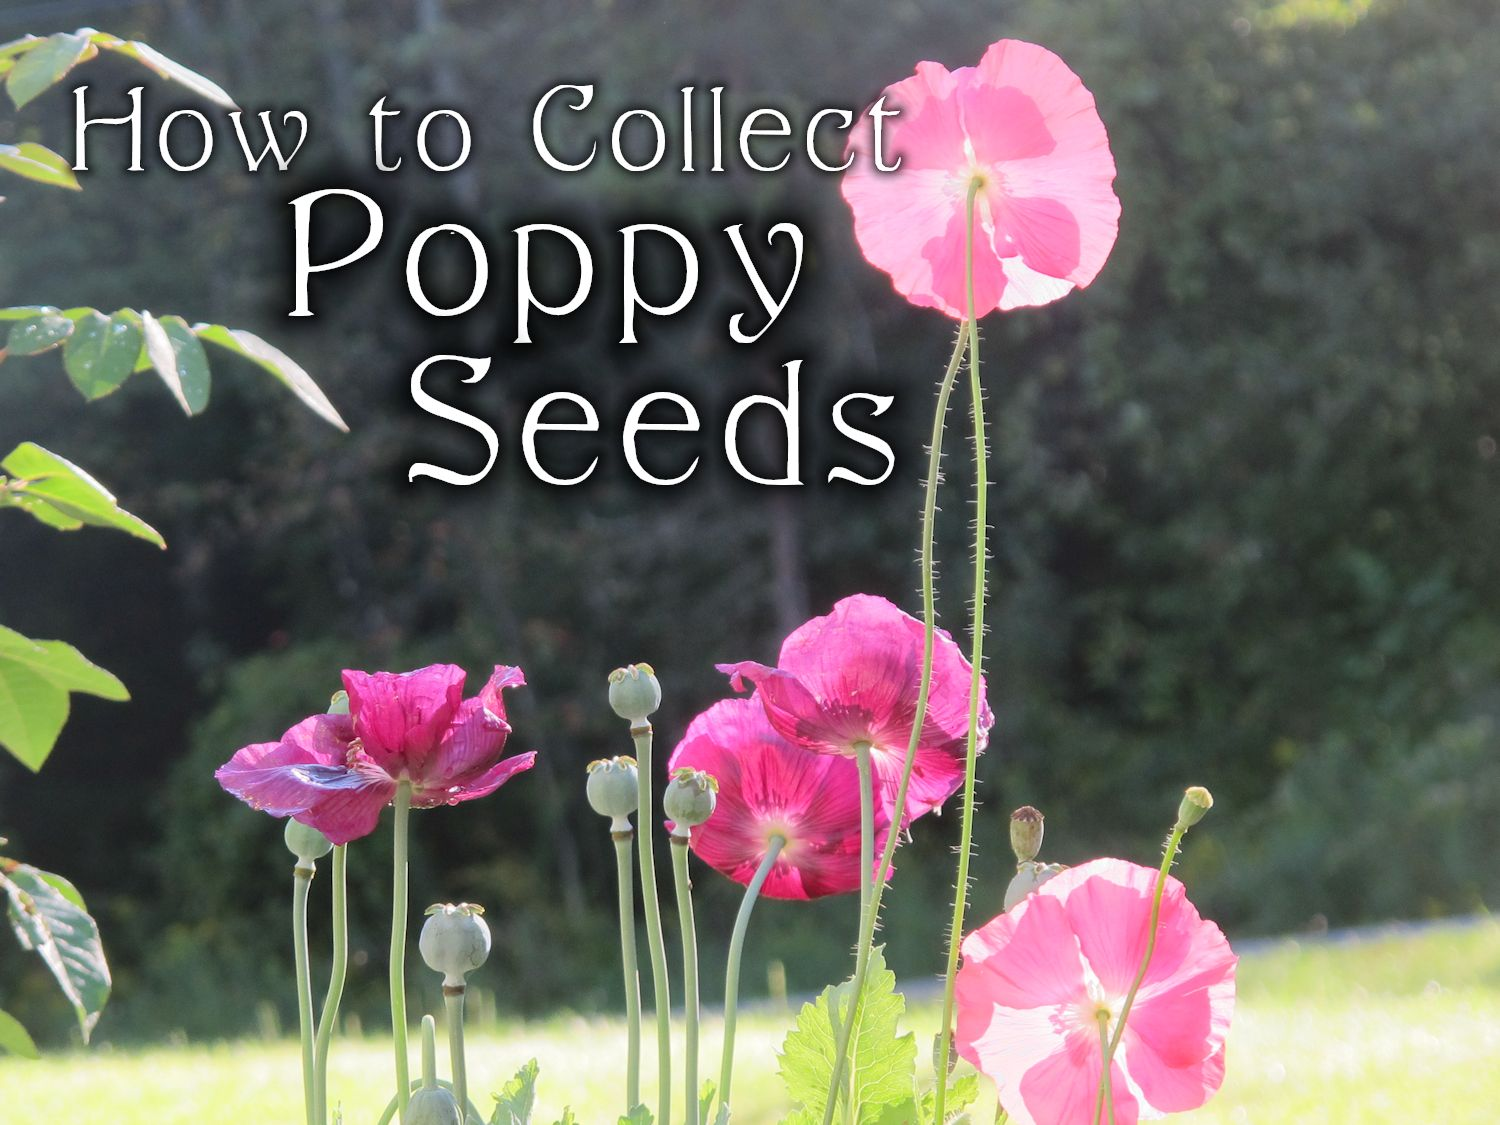 Collecting Poppy Seeds Fall Gardening Chores